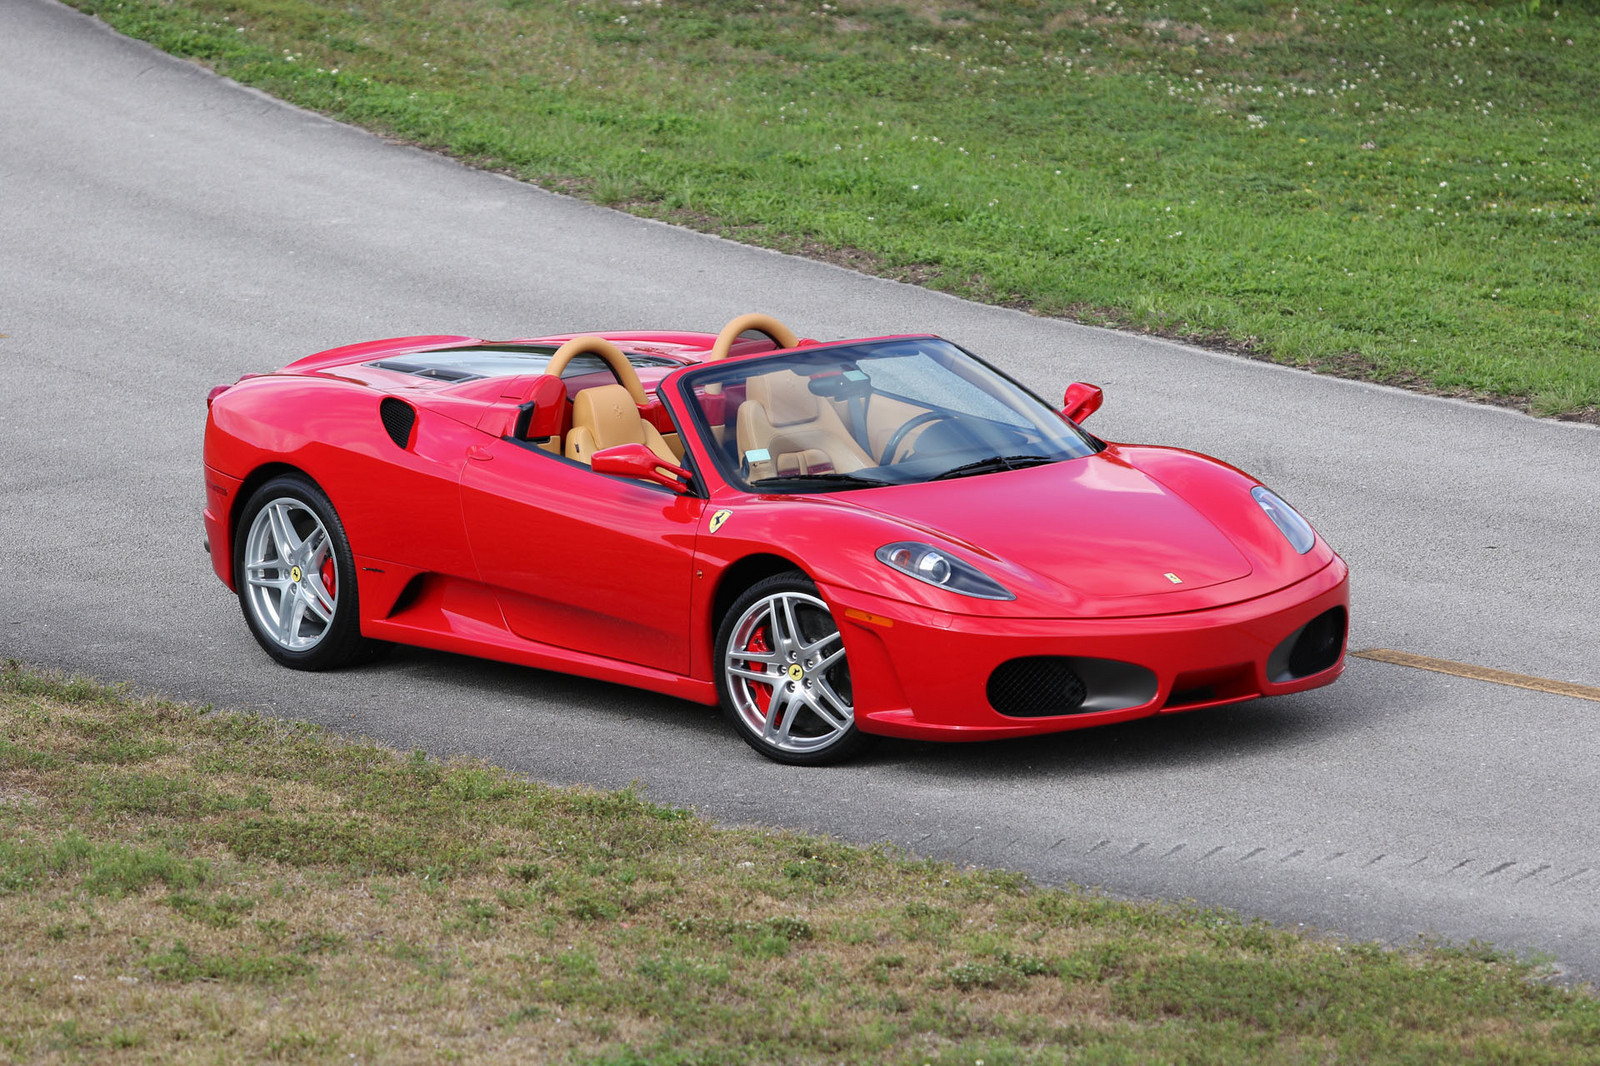 Red 2008 Ferrari F430 Spider